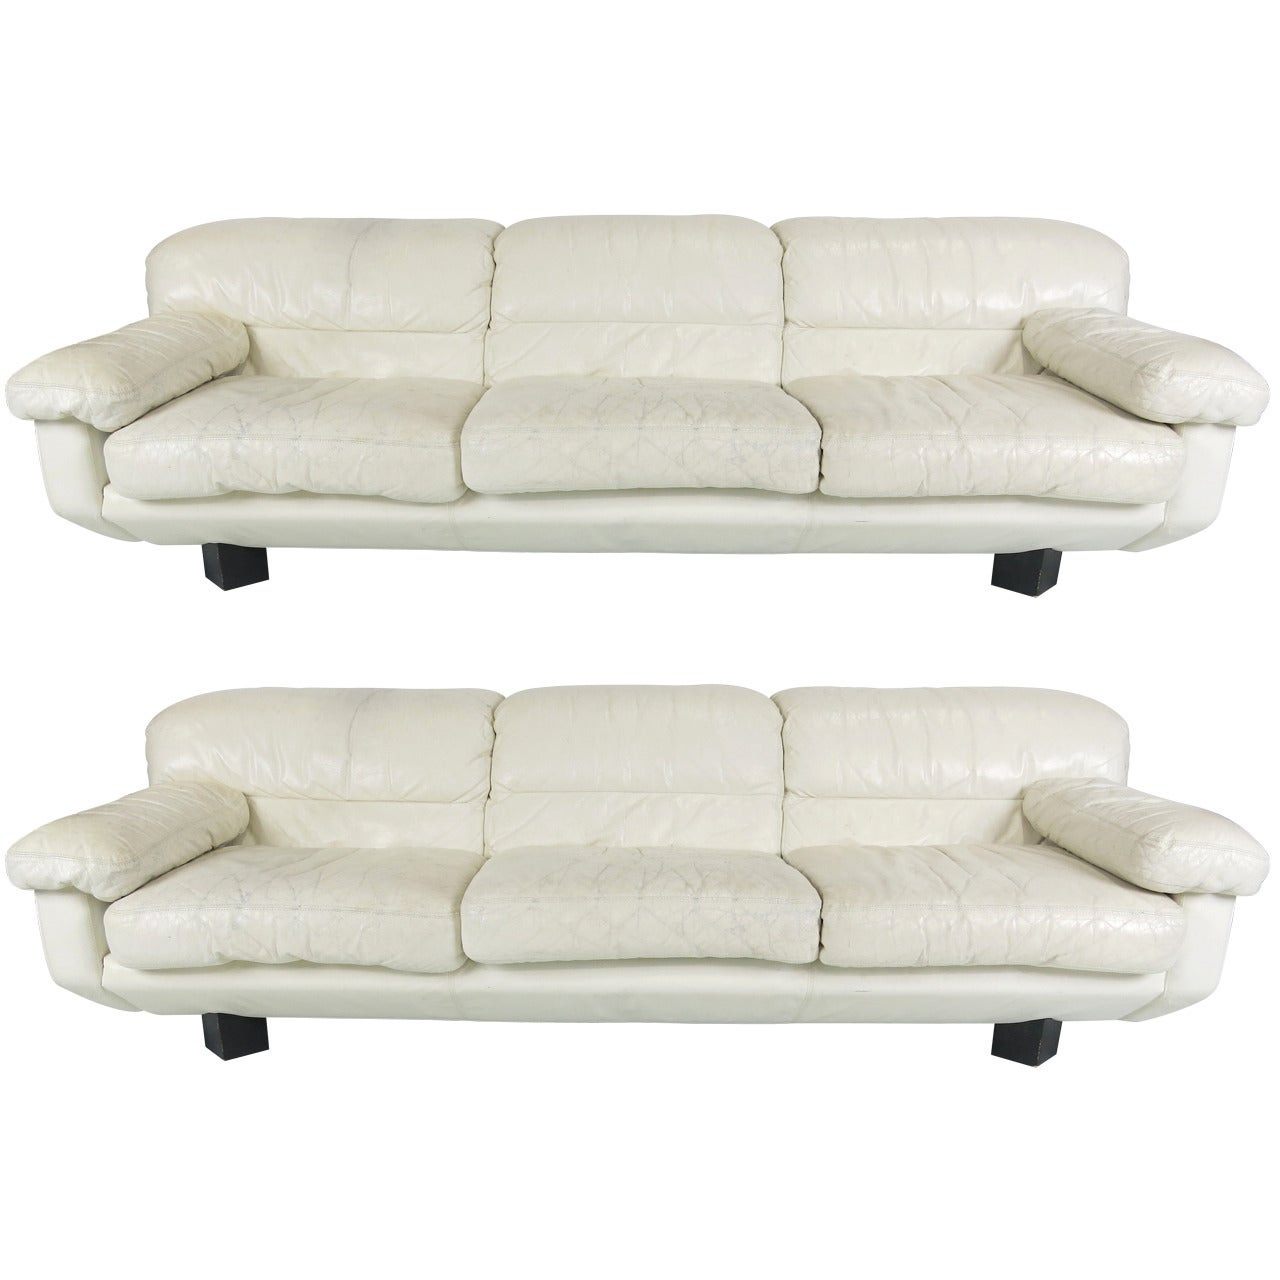 White Leather Couch Pair Of Sleek 80 S Italian White Leather Sofas By Marco Zani